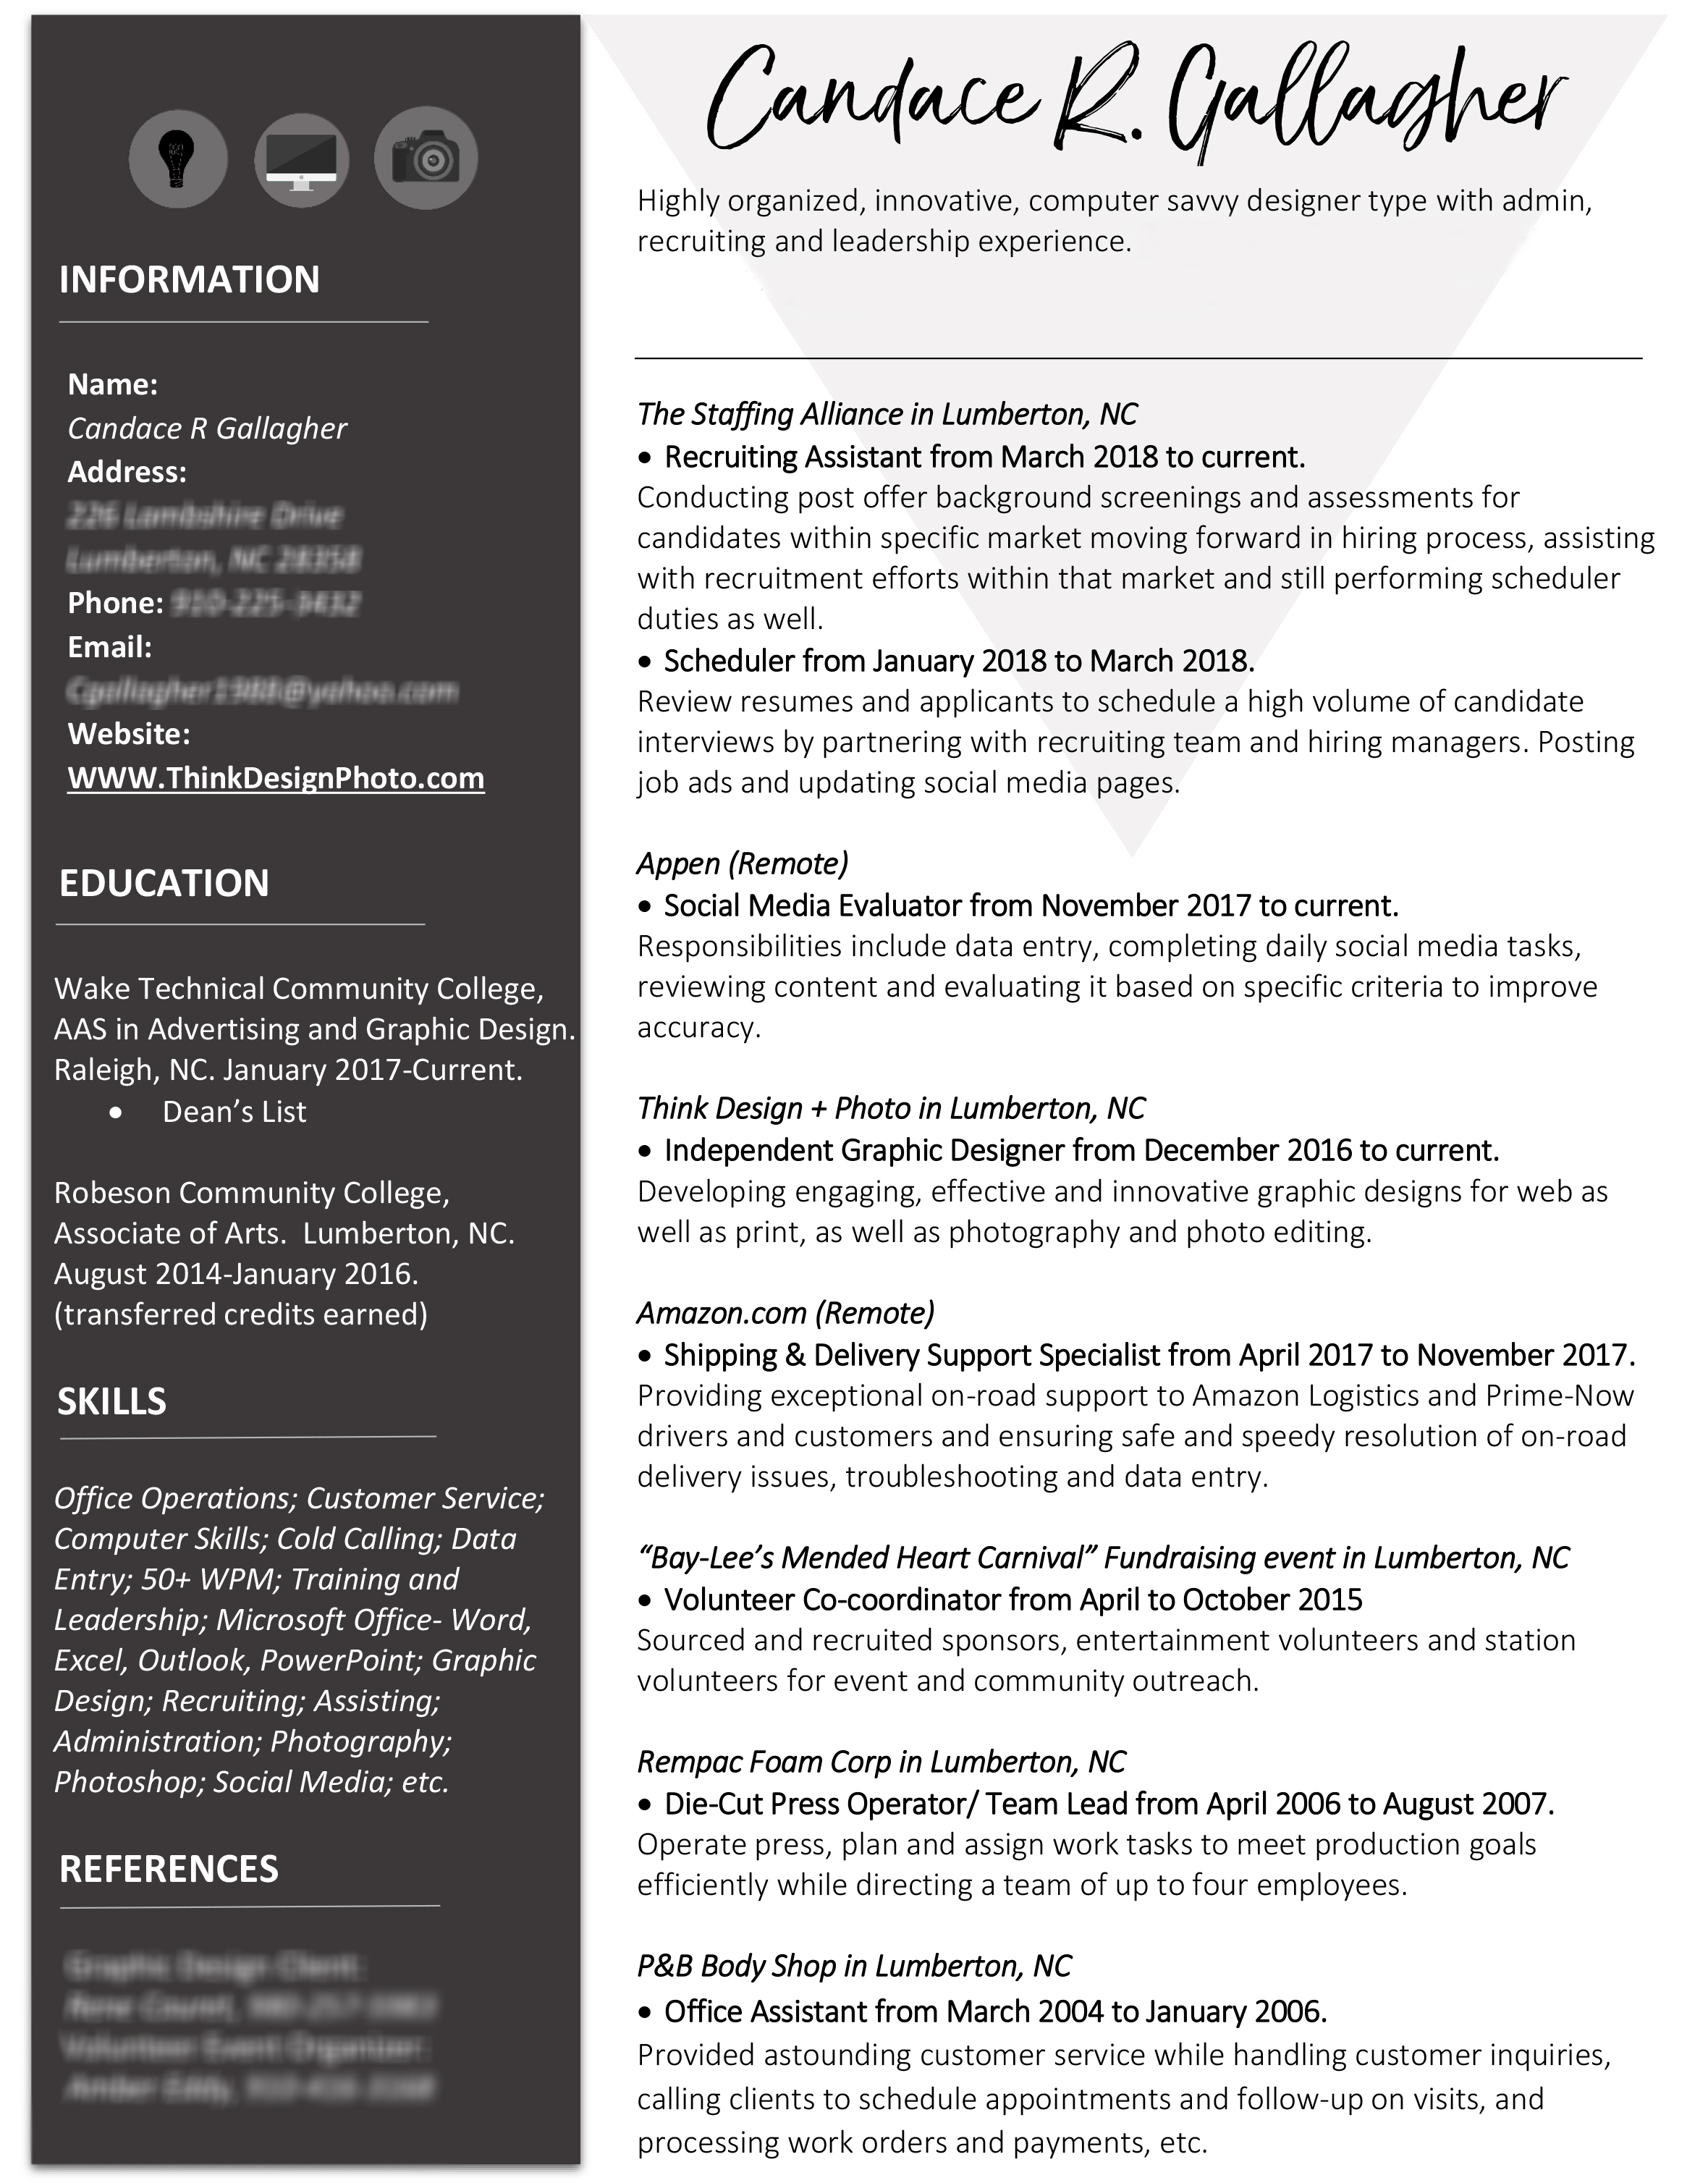 Resume – Think Design + Photo